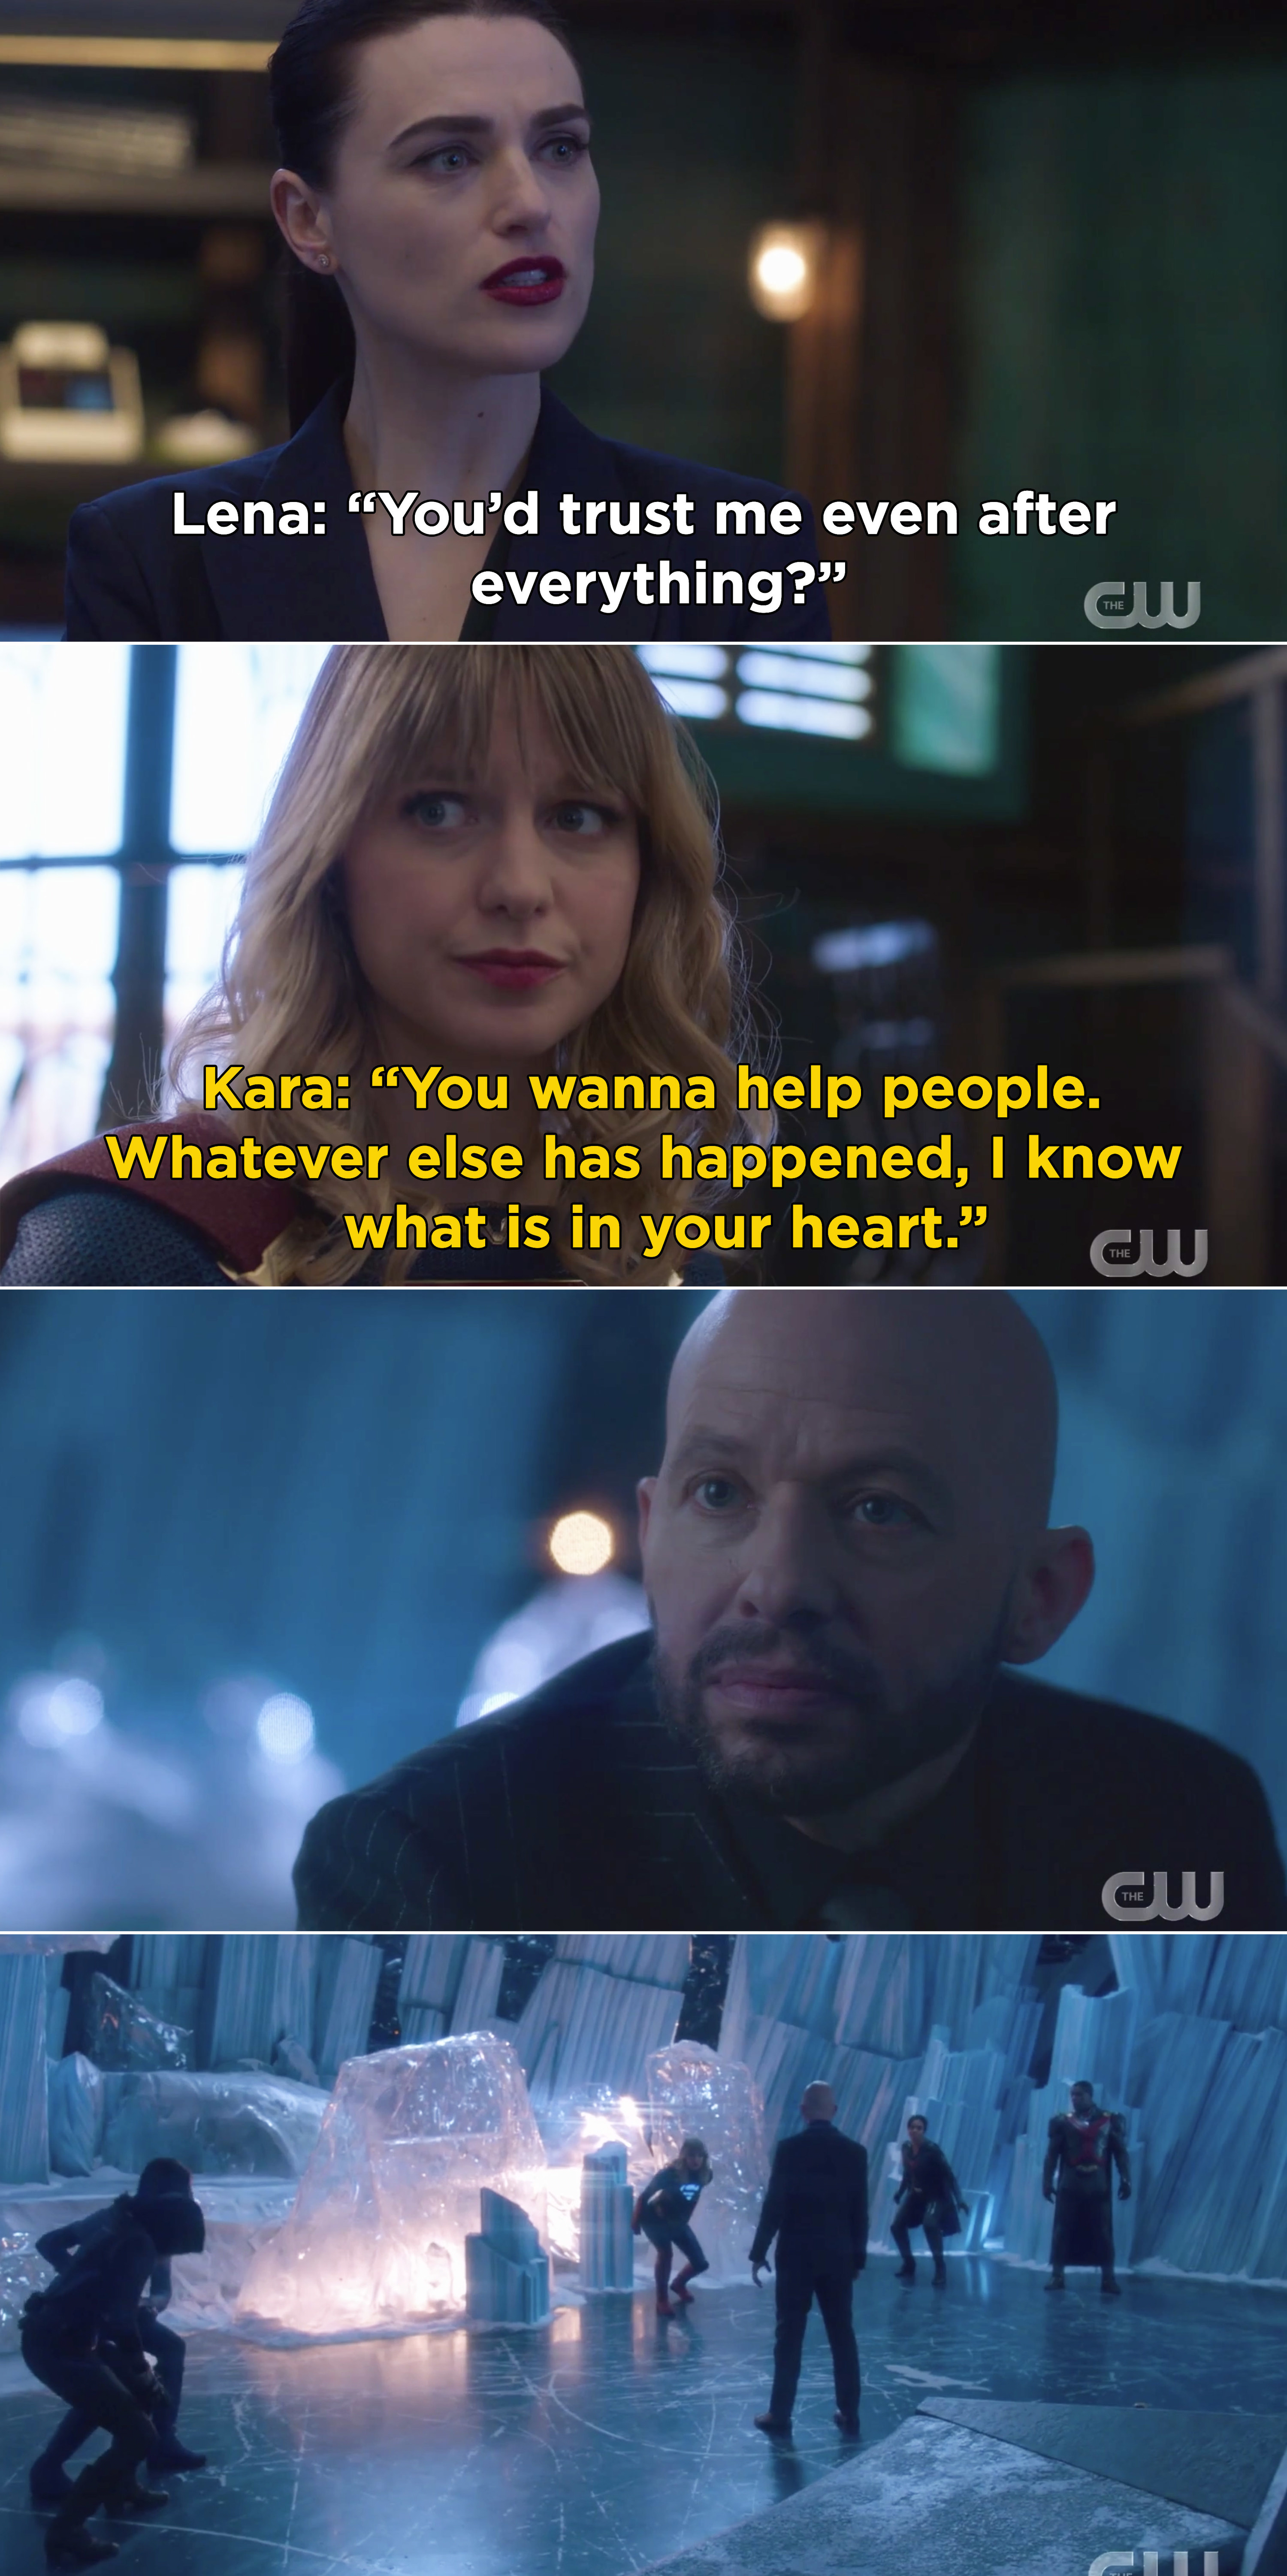 """Kara telling Lena, """"You wanna help people. Whatever else has happened, I know what is in your heart"""""""